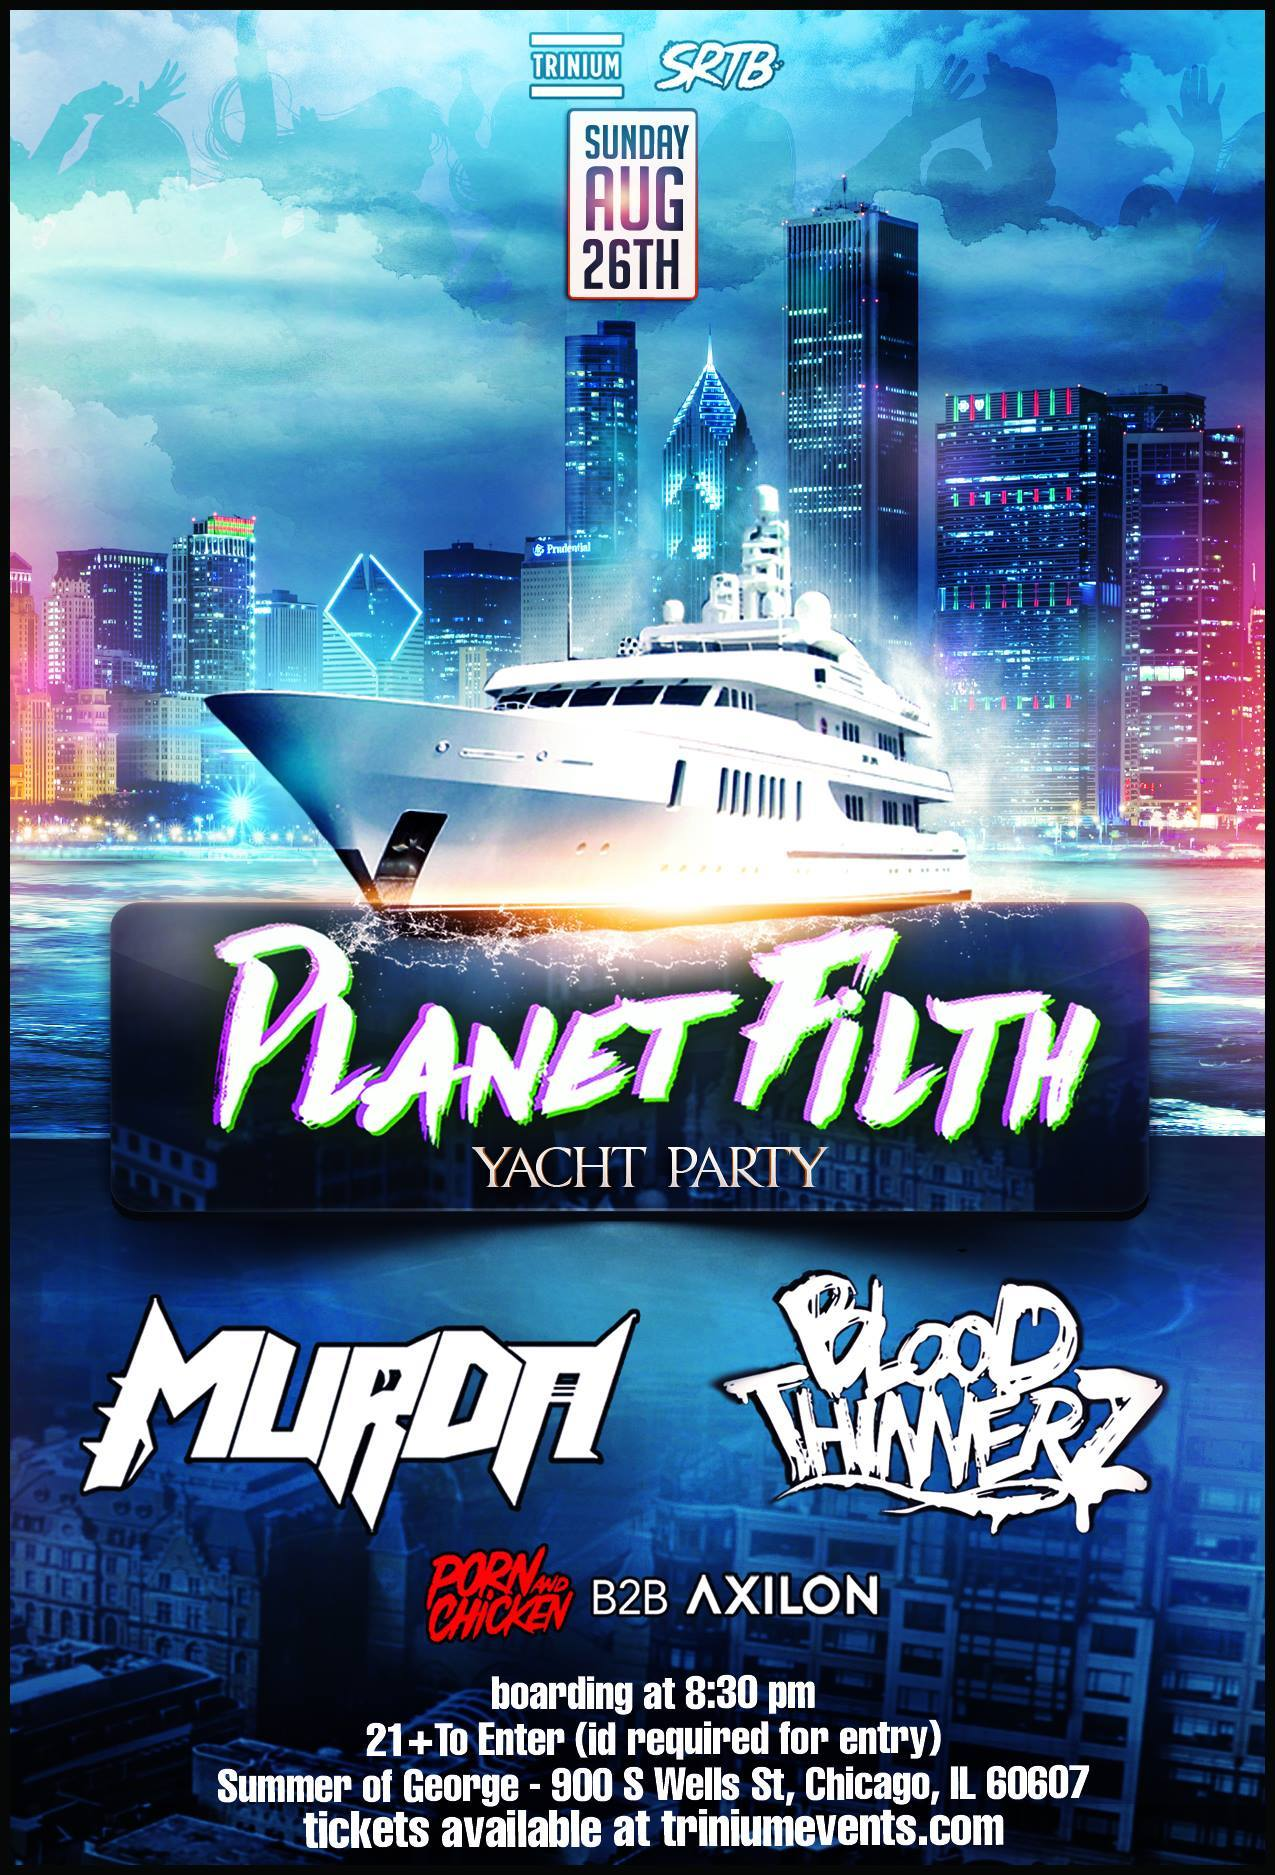 Planet Filth Yacht Party ft MURDA & BLOODTHINNERZ - Events